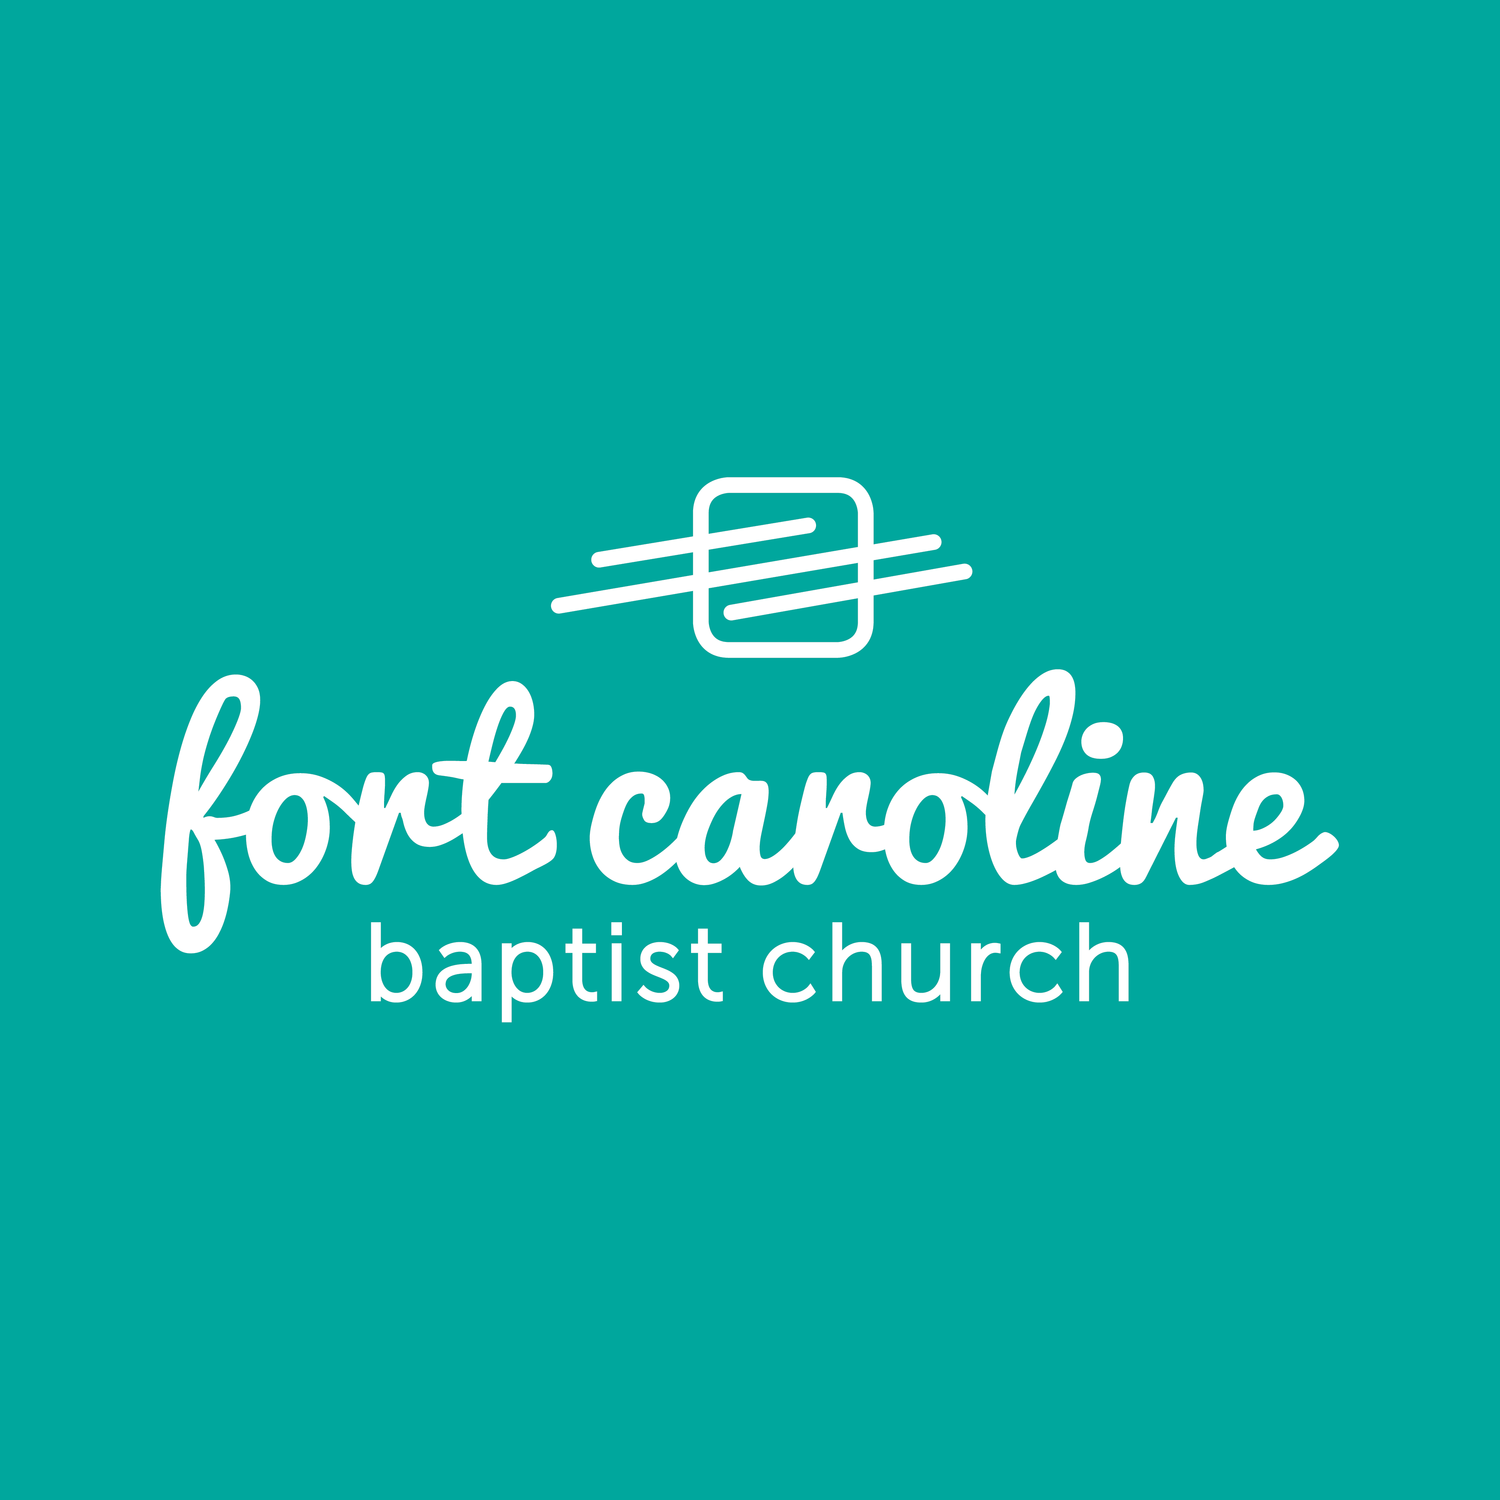 FORT CAROLINE BAPTIST ONLINE - FORT CAROLINE BAPTIST CHURCH